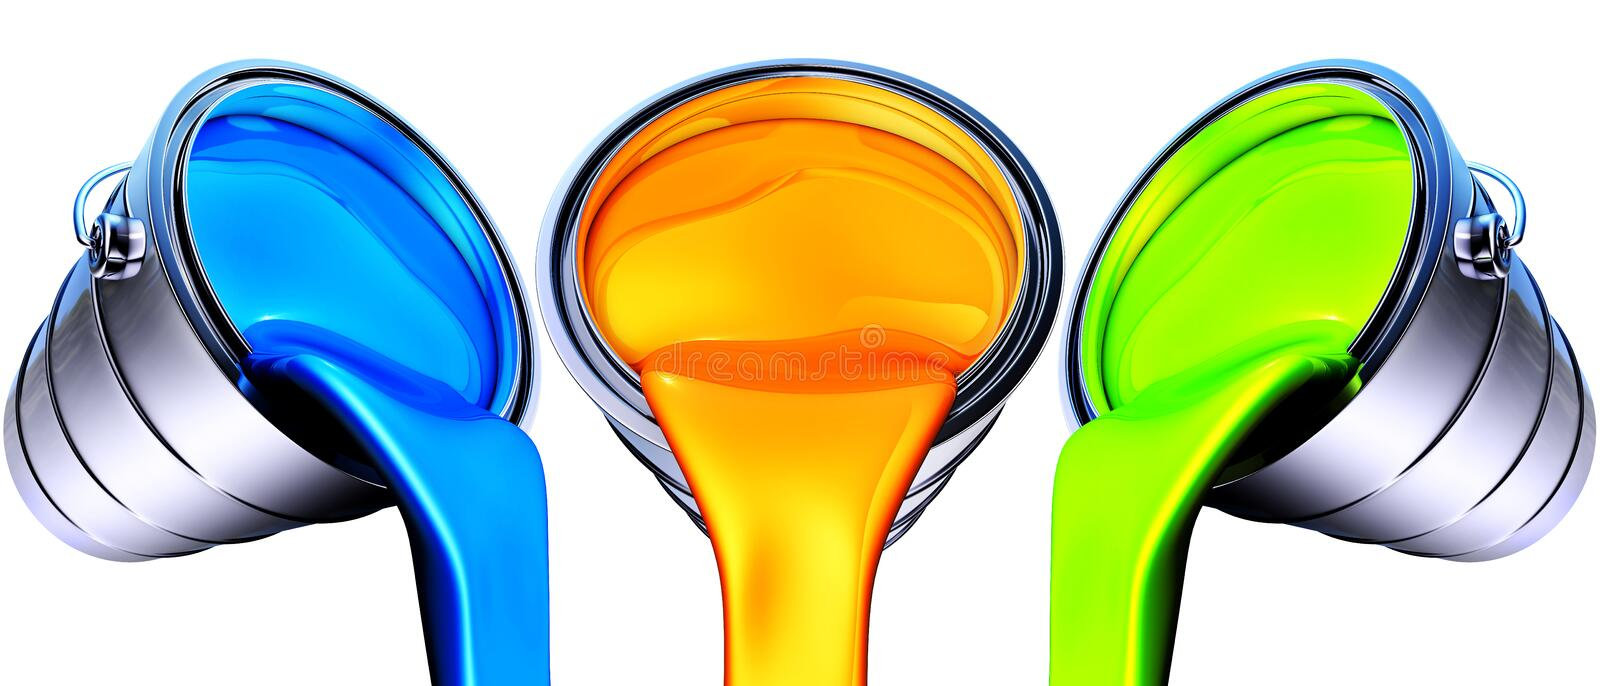 Paint pots. High resolution rendering of paint pots royalty free illustration